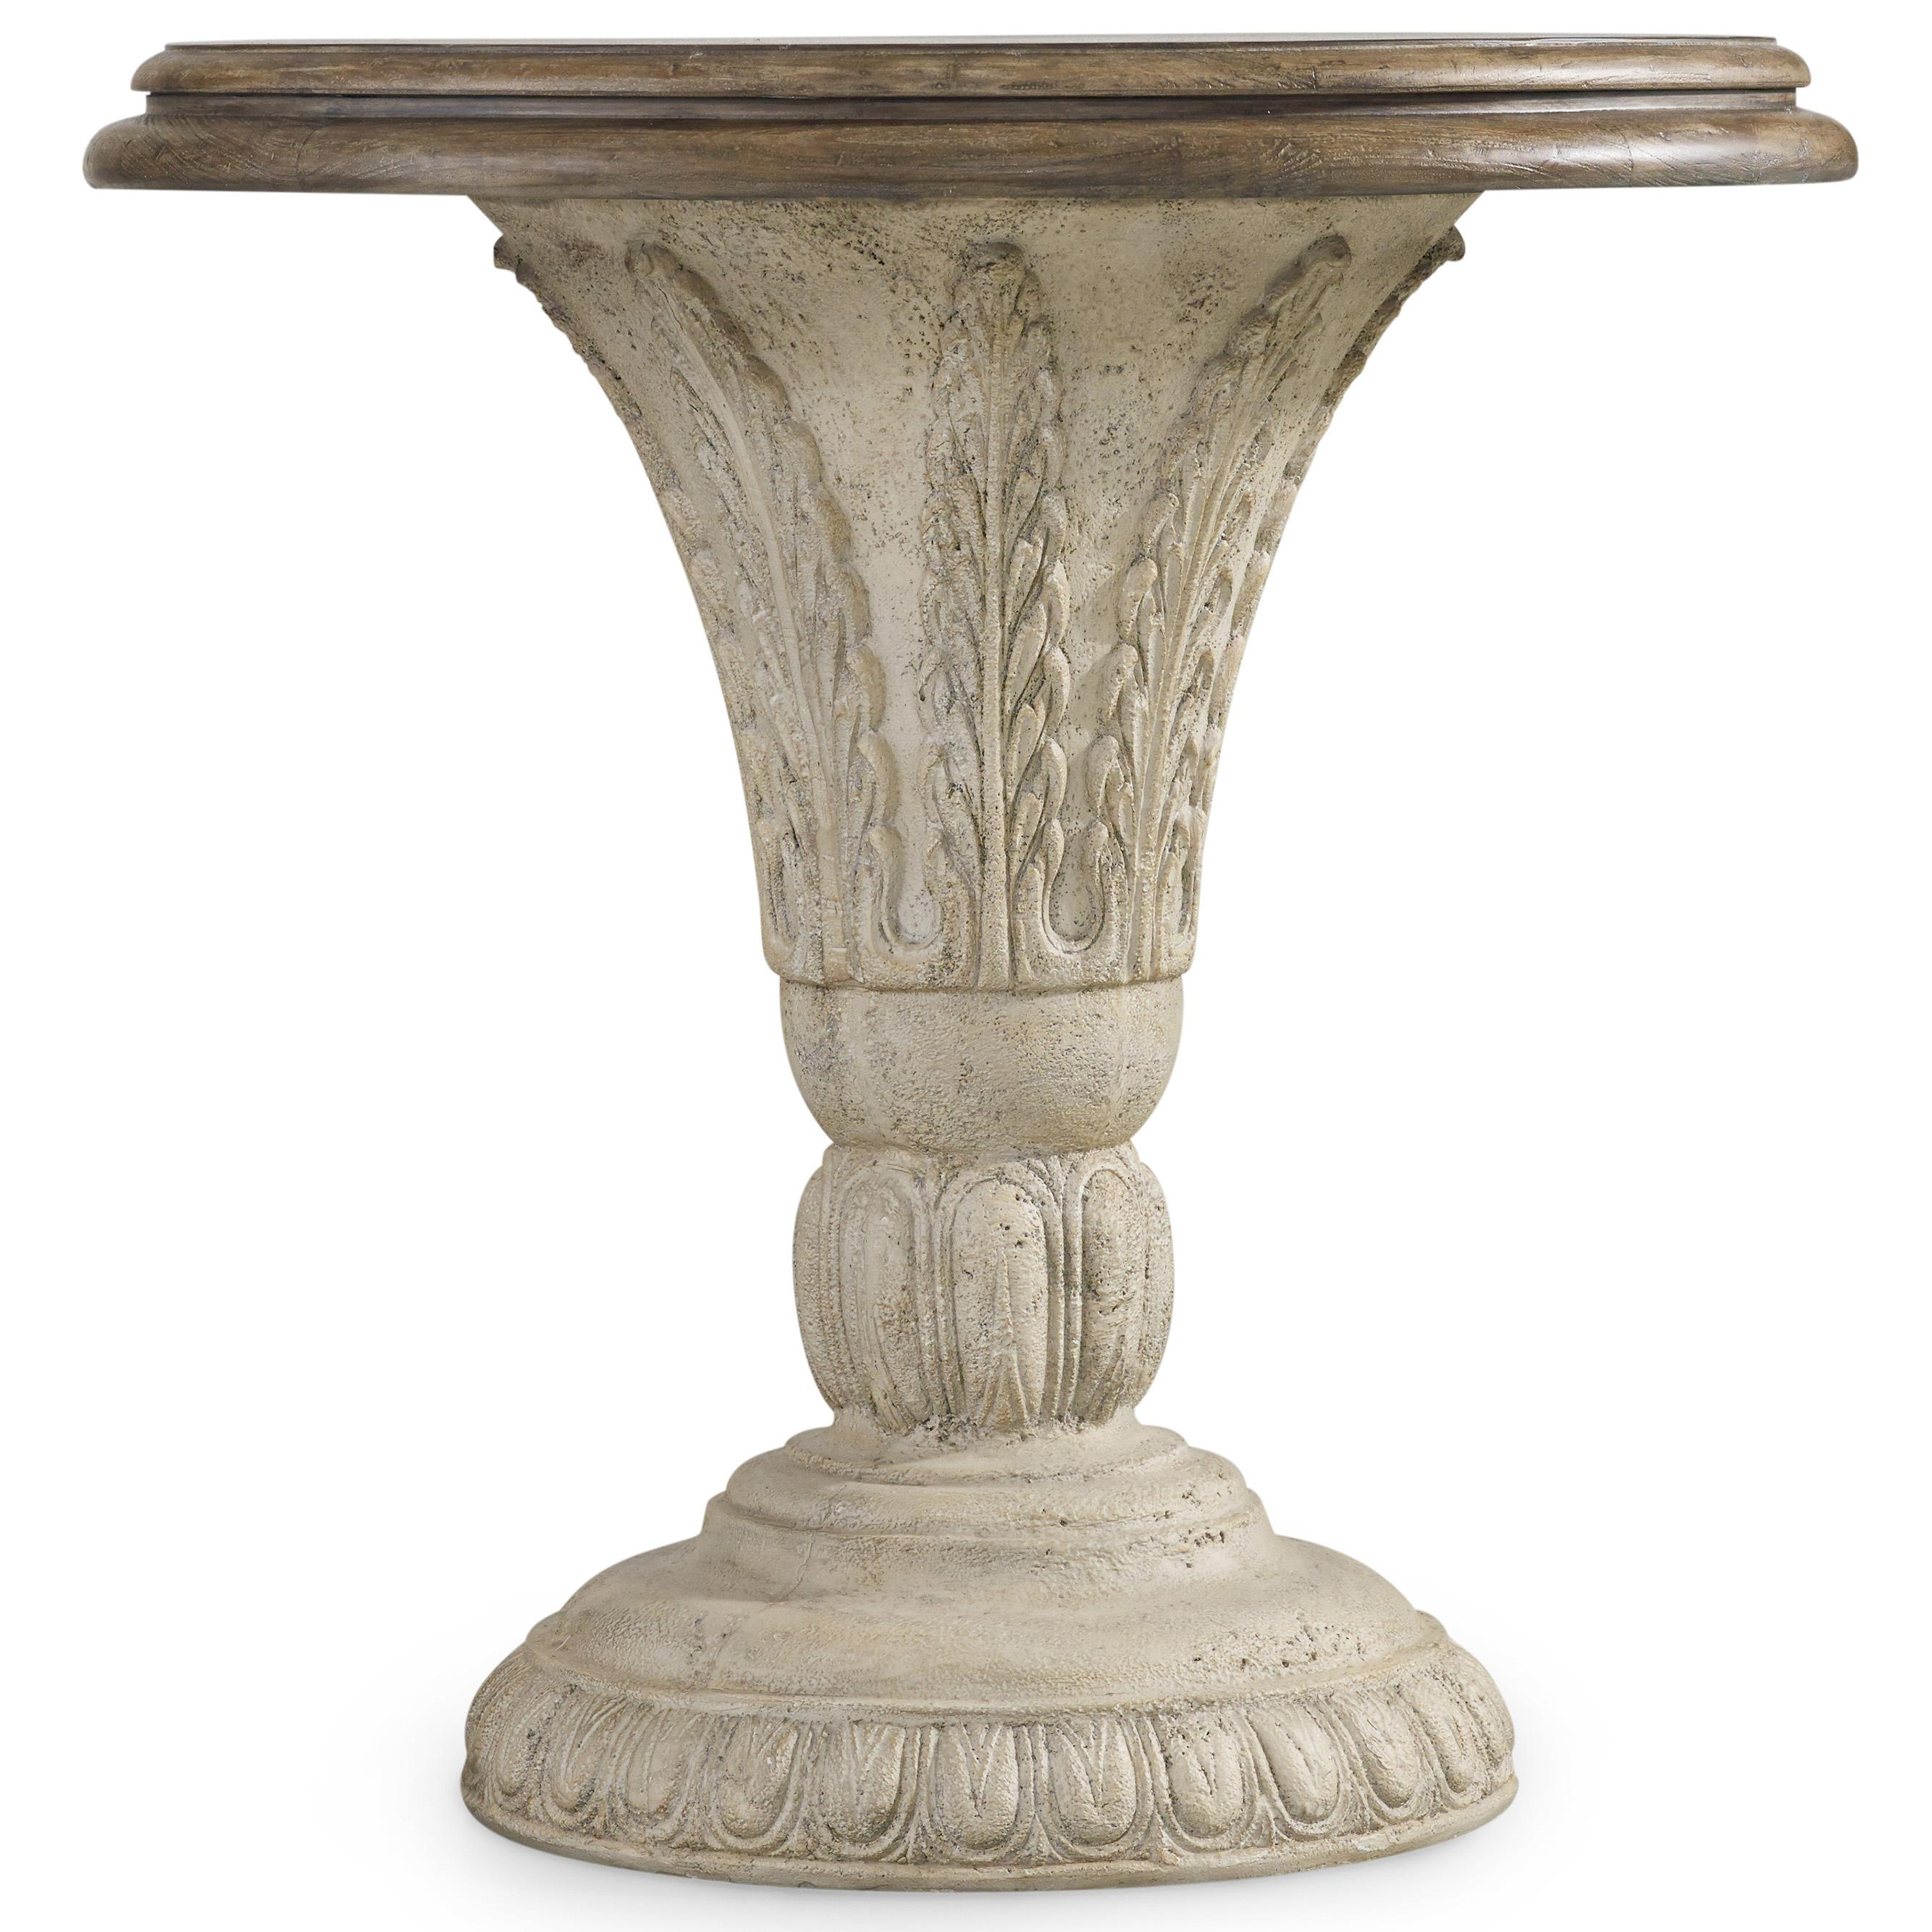 Hooker Furniture Solana Round Accent Table - Item Number: 5391-50001